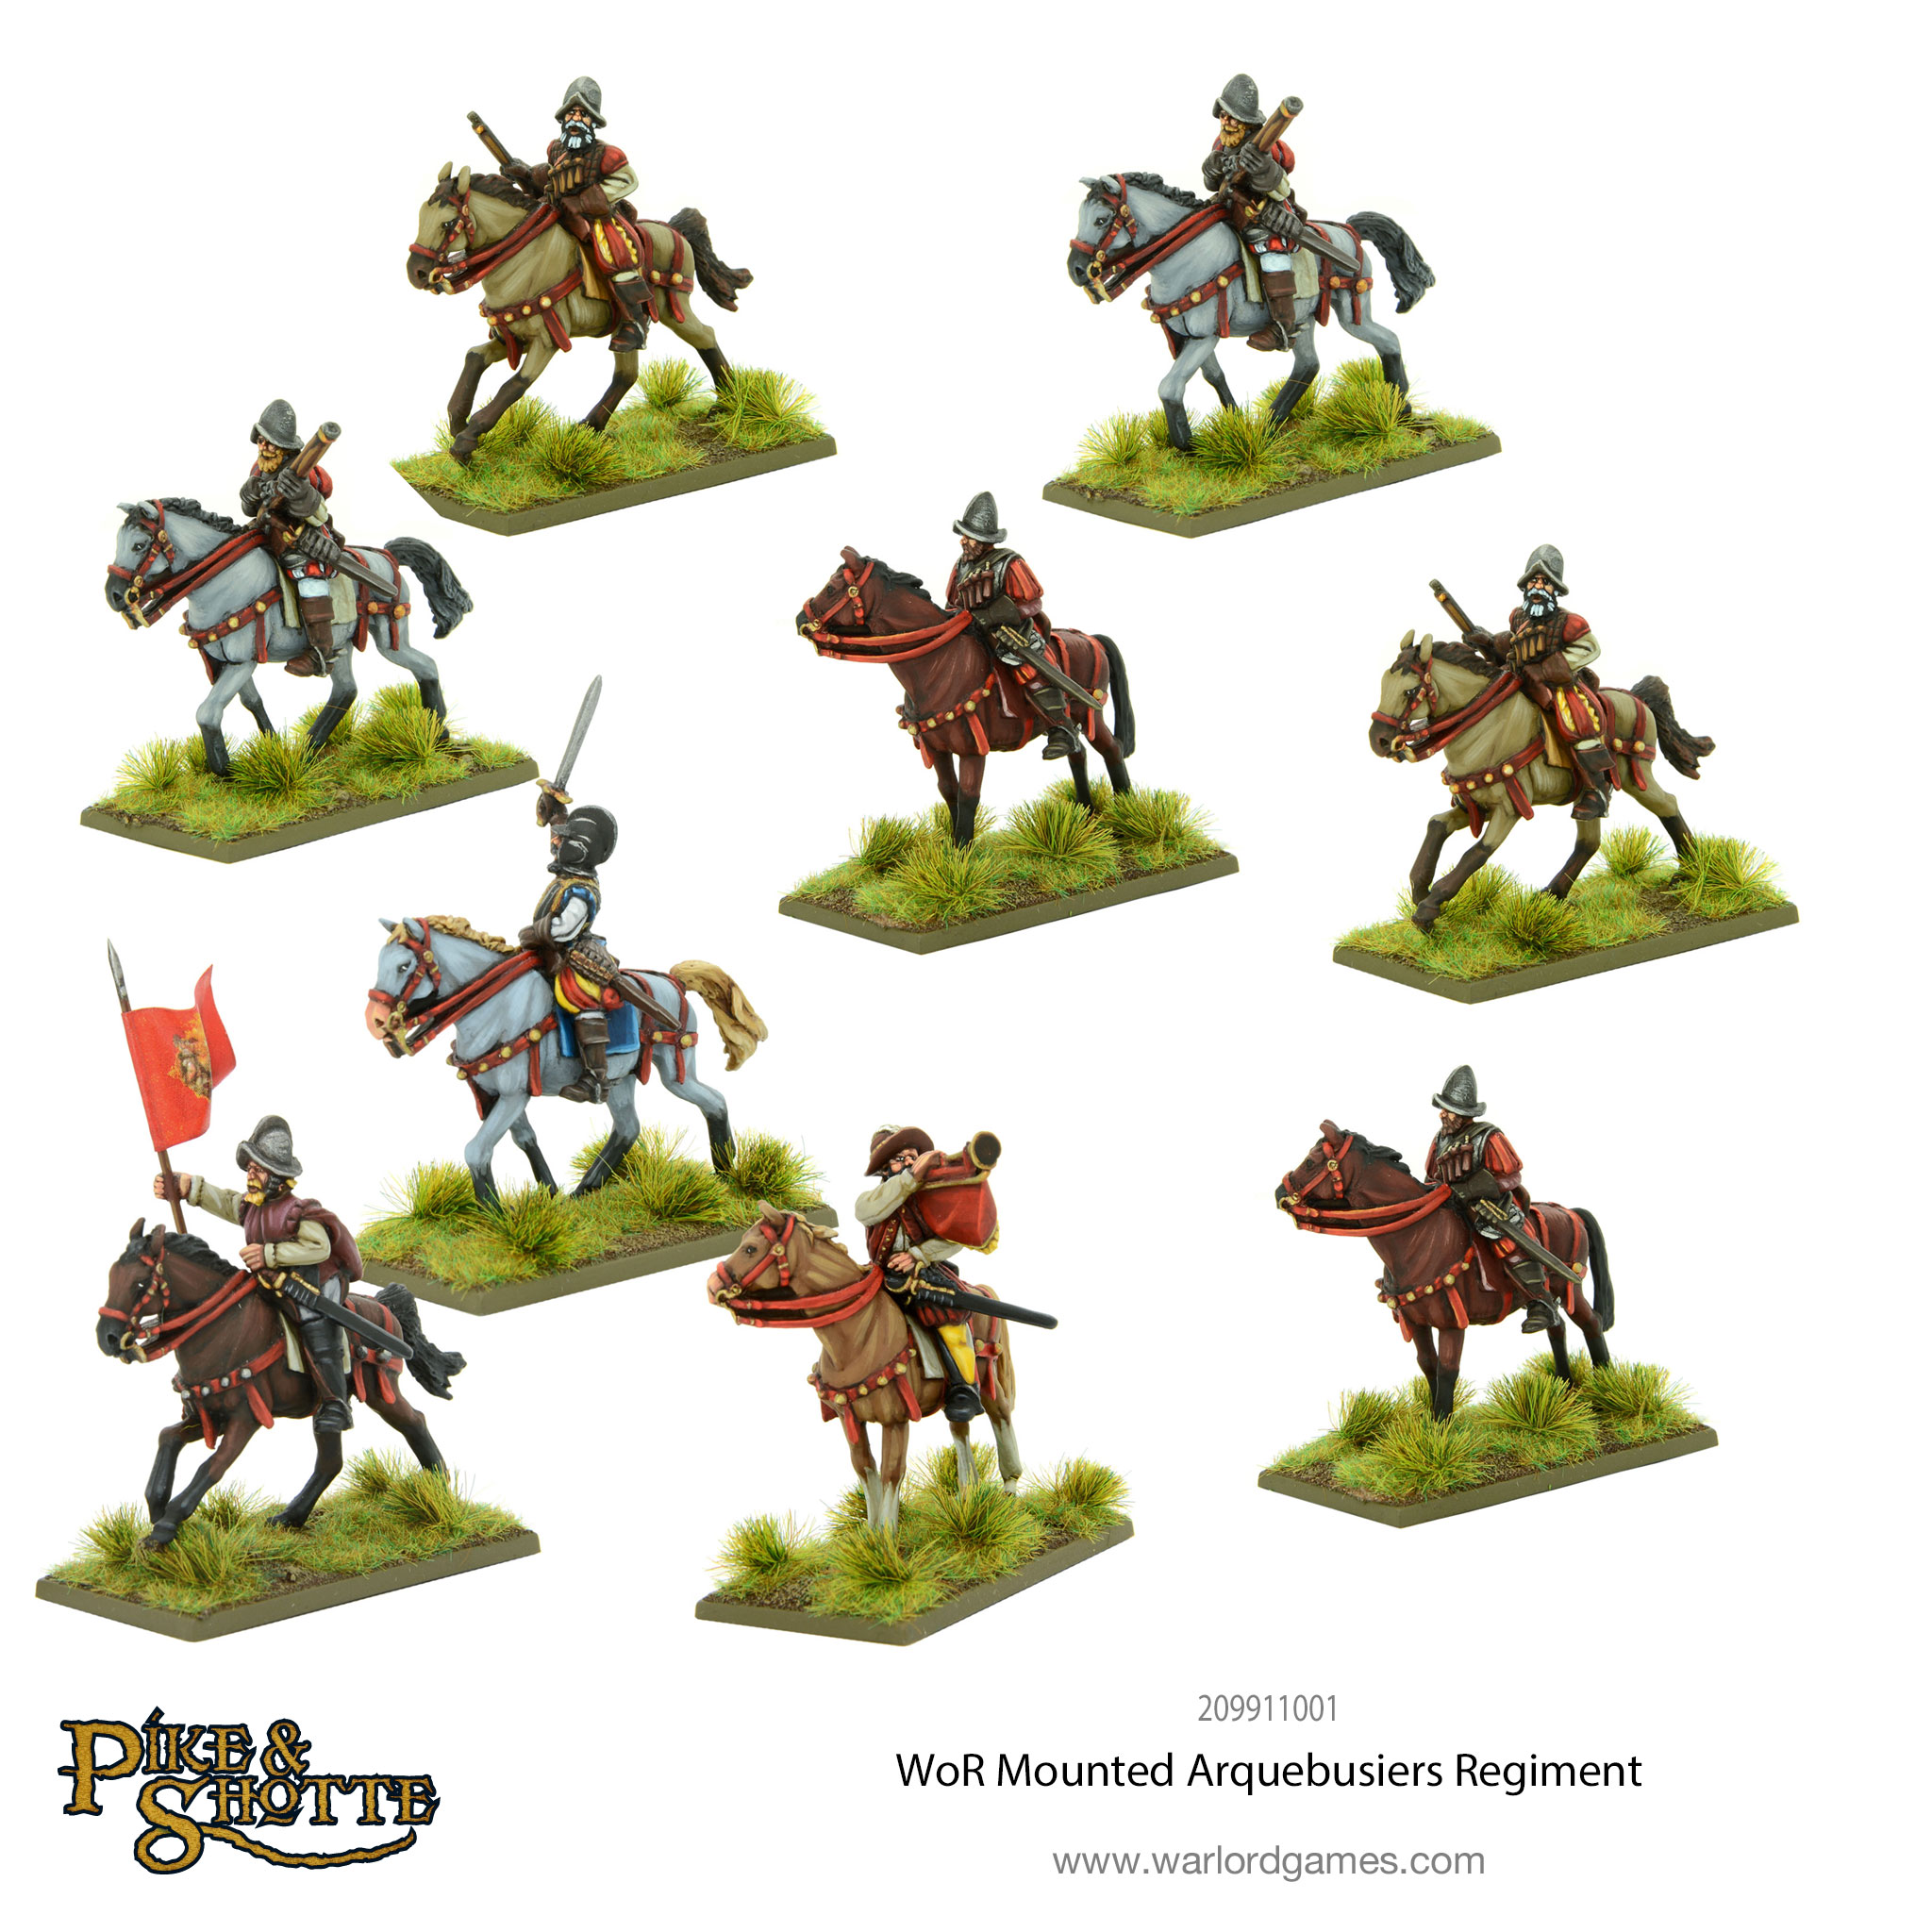 wars of religion mounted arquebusiers regiment